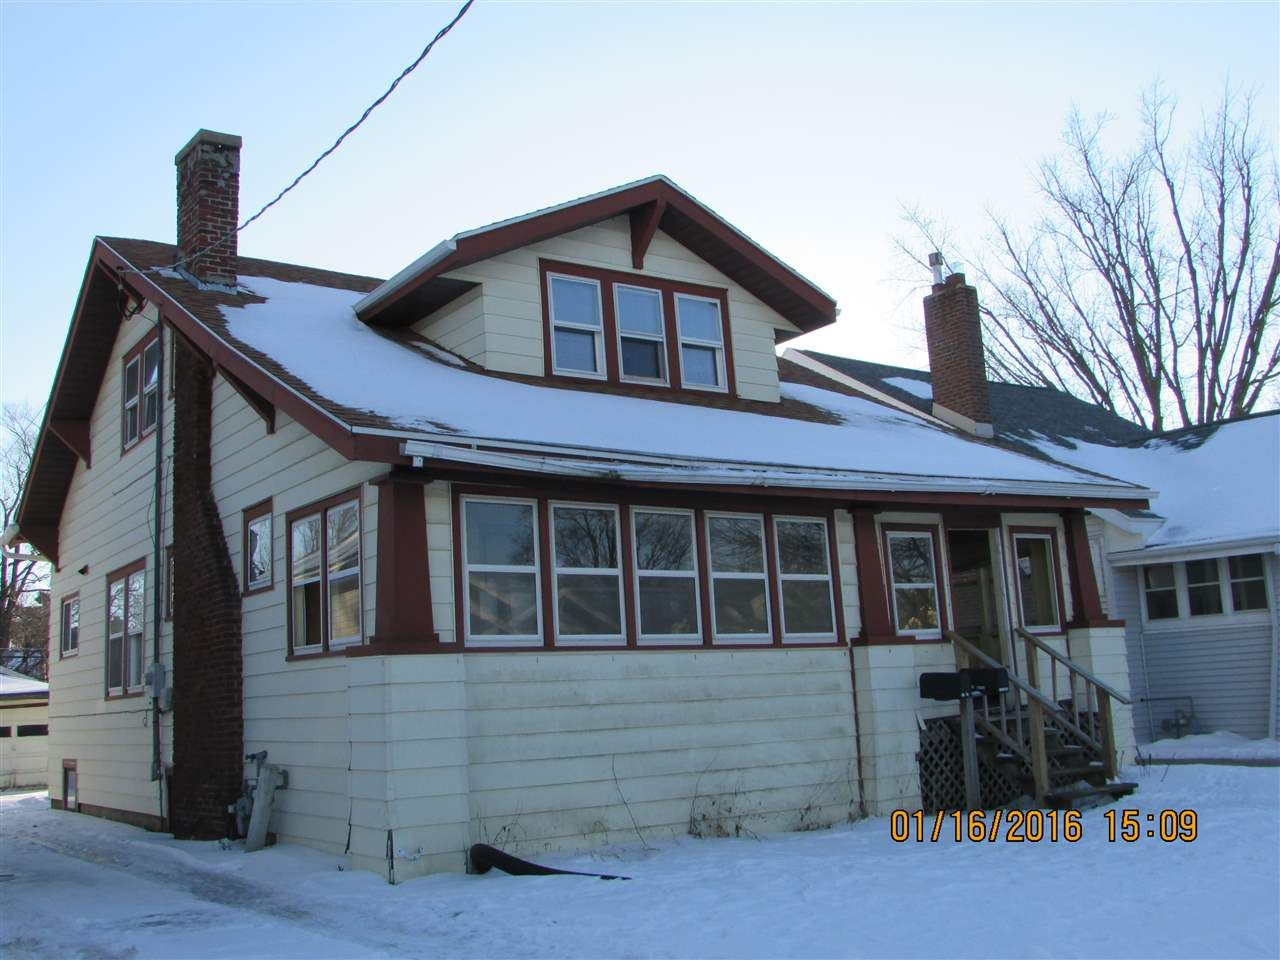 820 Sherman Ave  Janesville , WI  53545  - $67,900  #JanesvilleWI #JanesvilleWIRealEstate Click for more pics